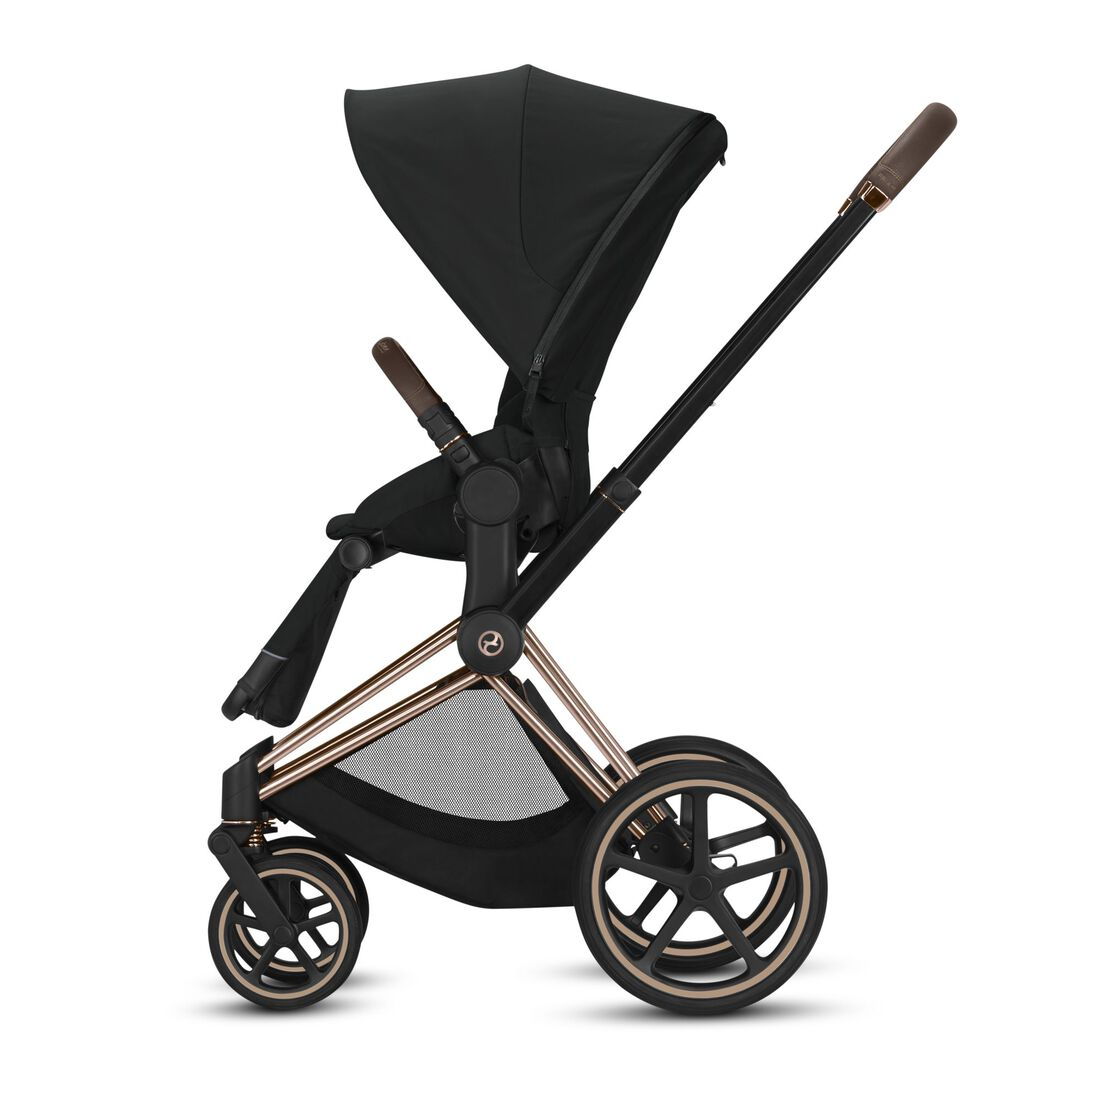 CYBEX Beezy Buggy - One-hand fold into compact self-standing package